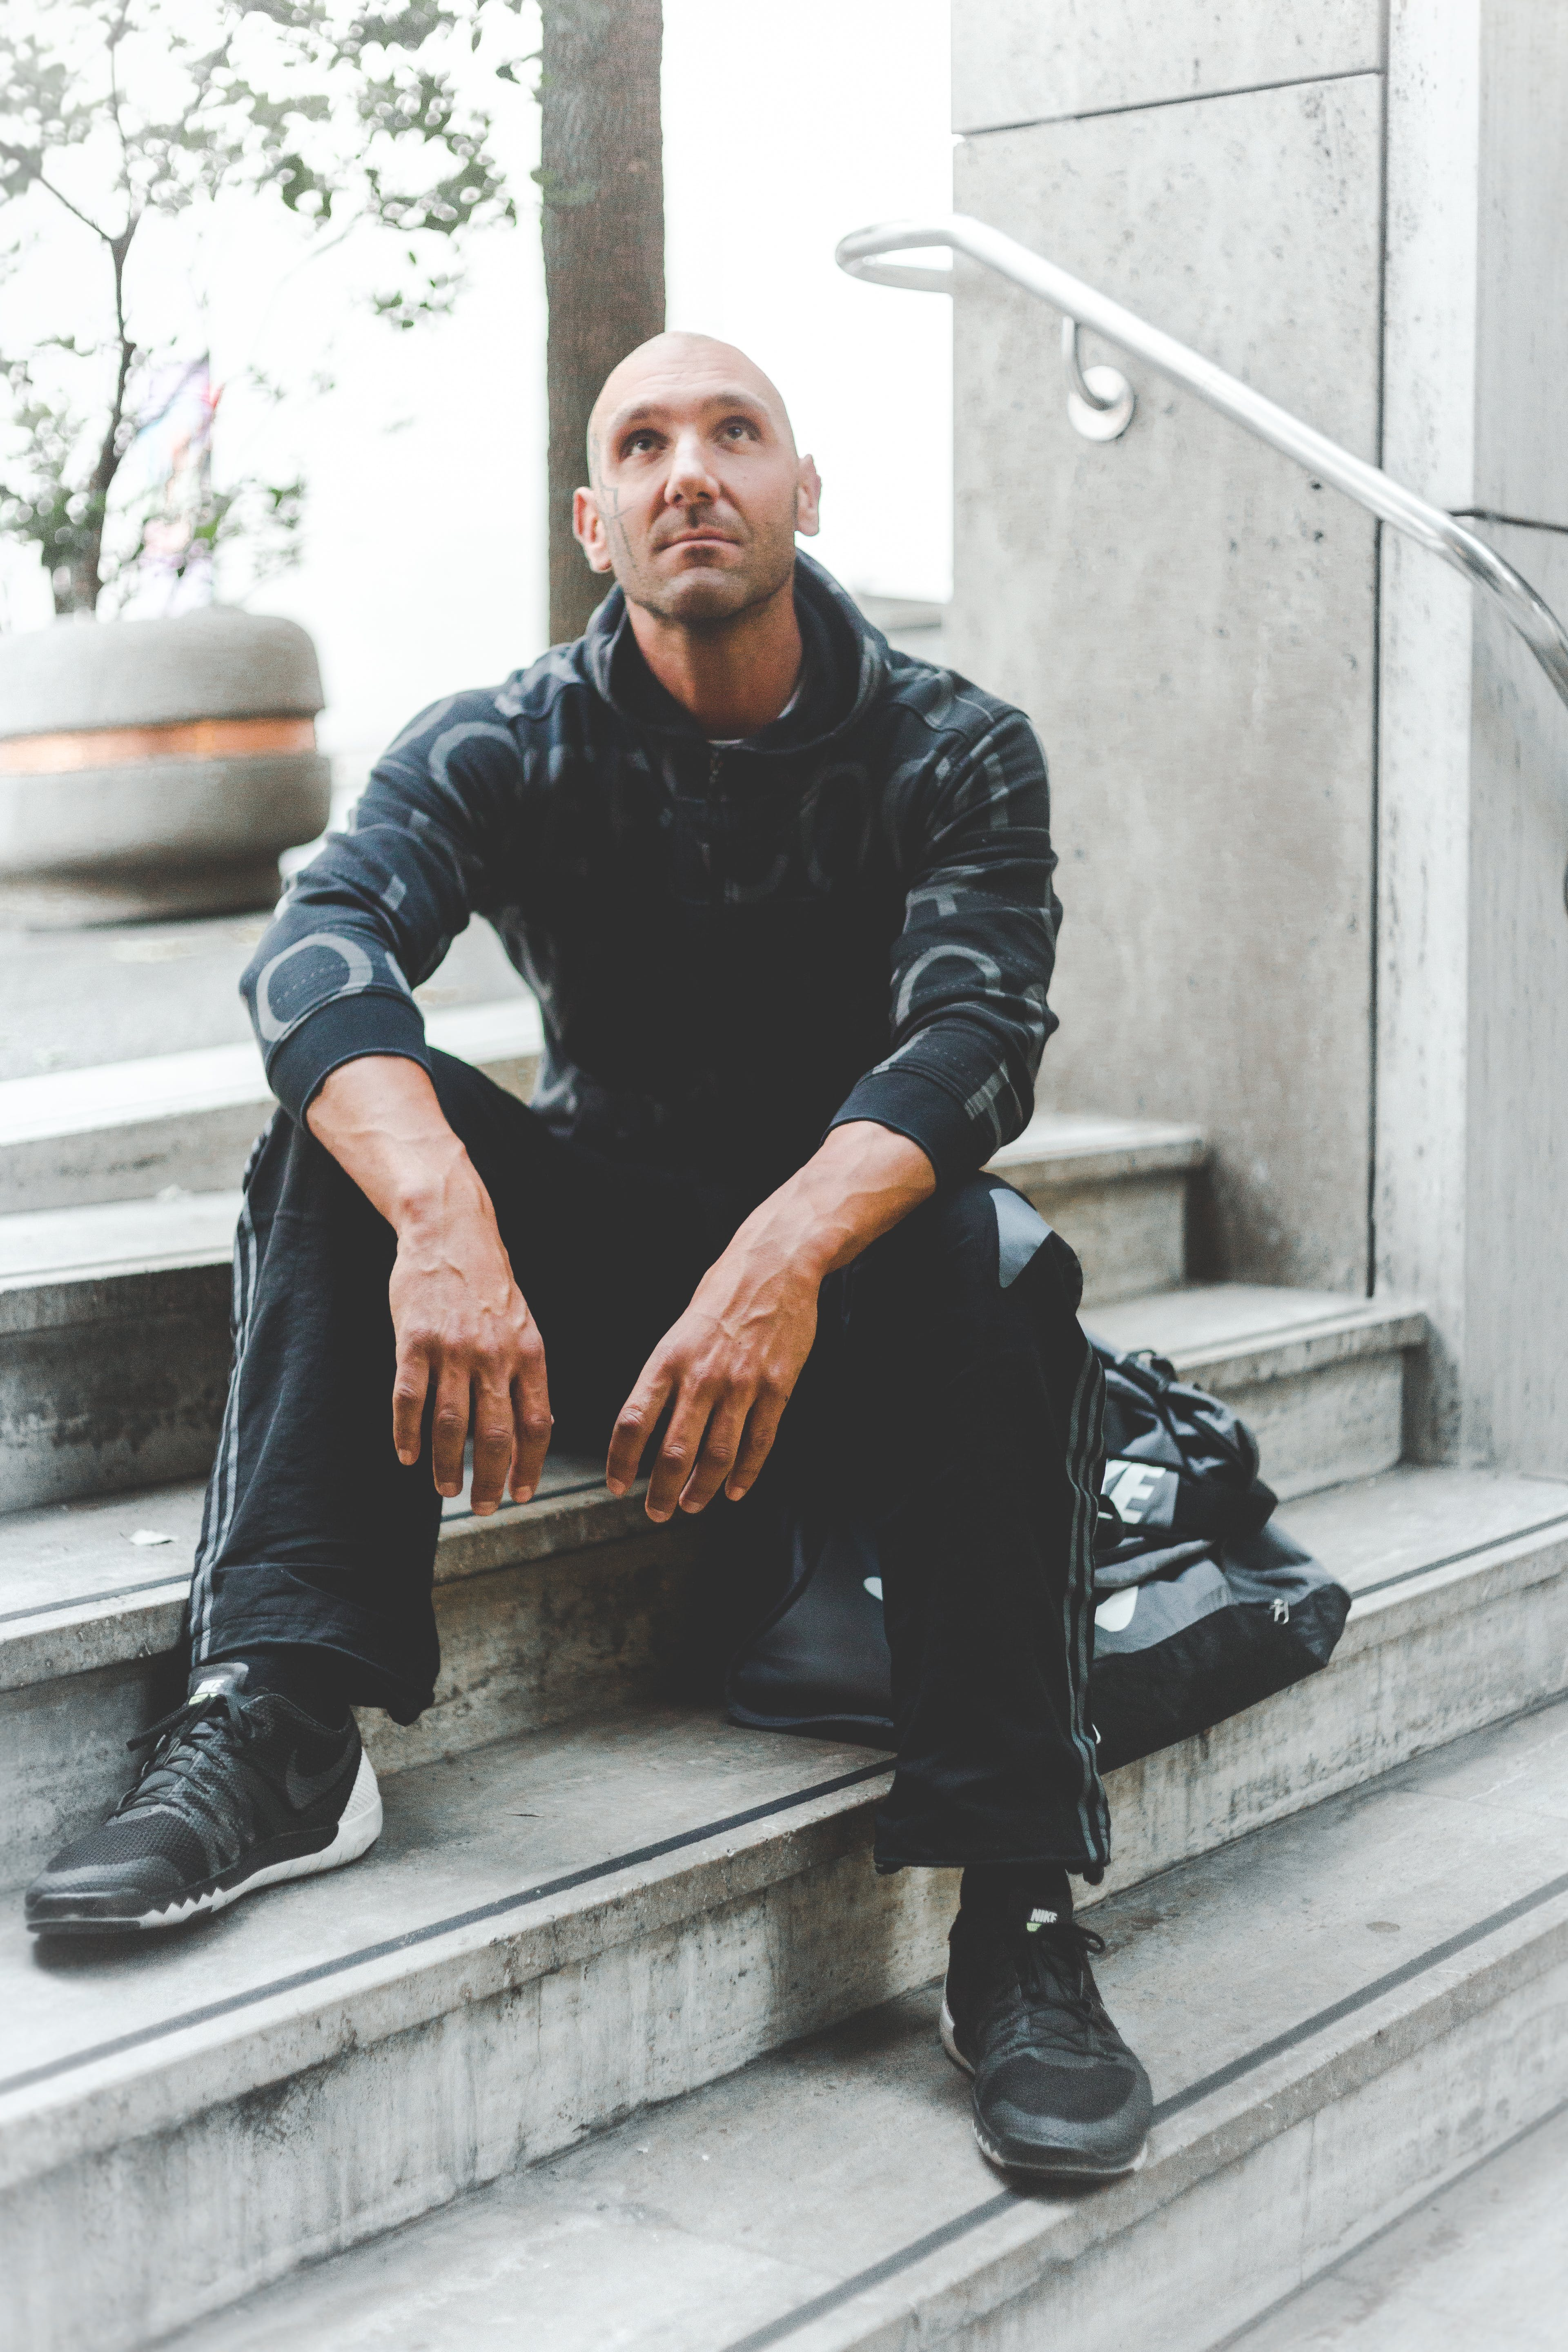 Man Sitting on Concrete Stair Looking Up